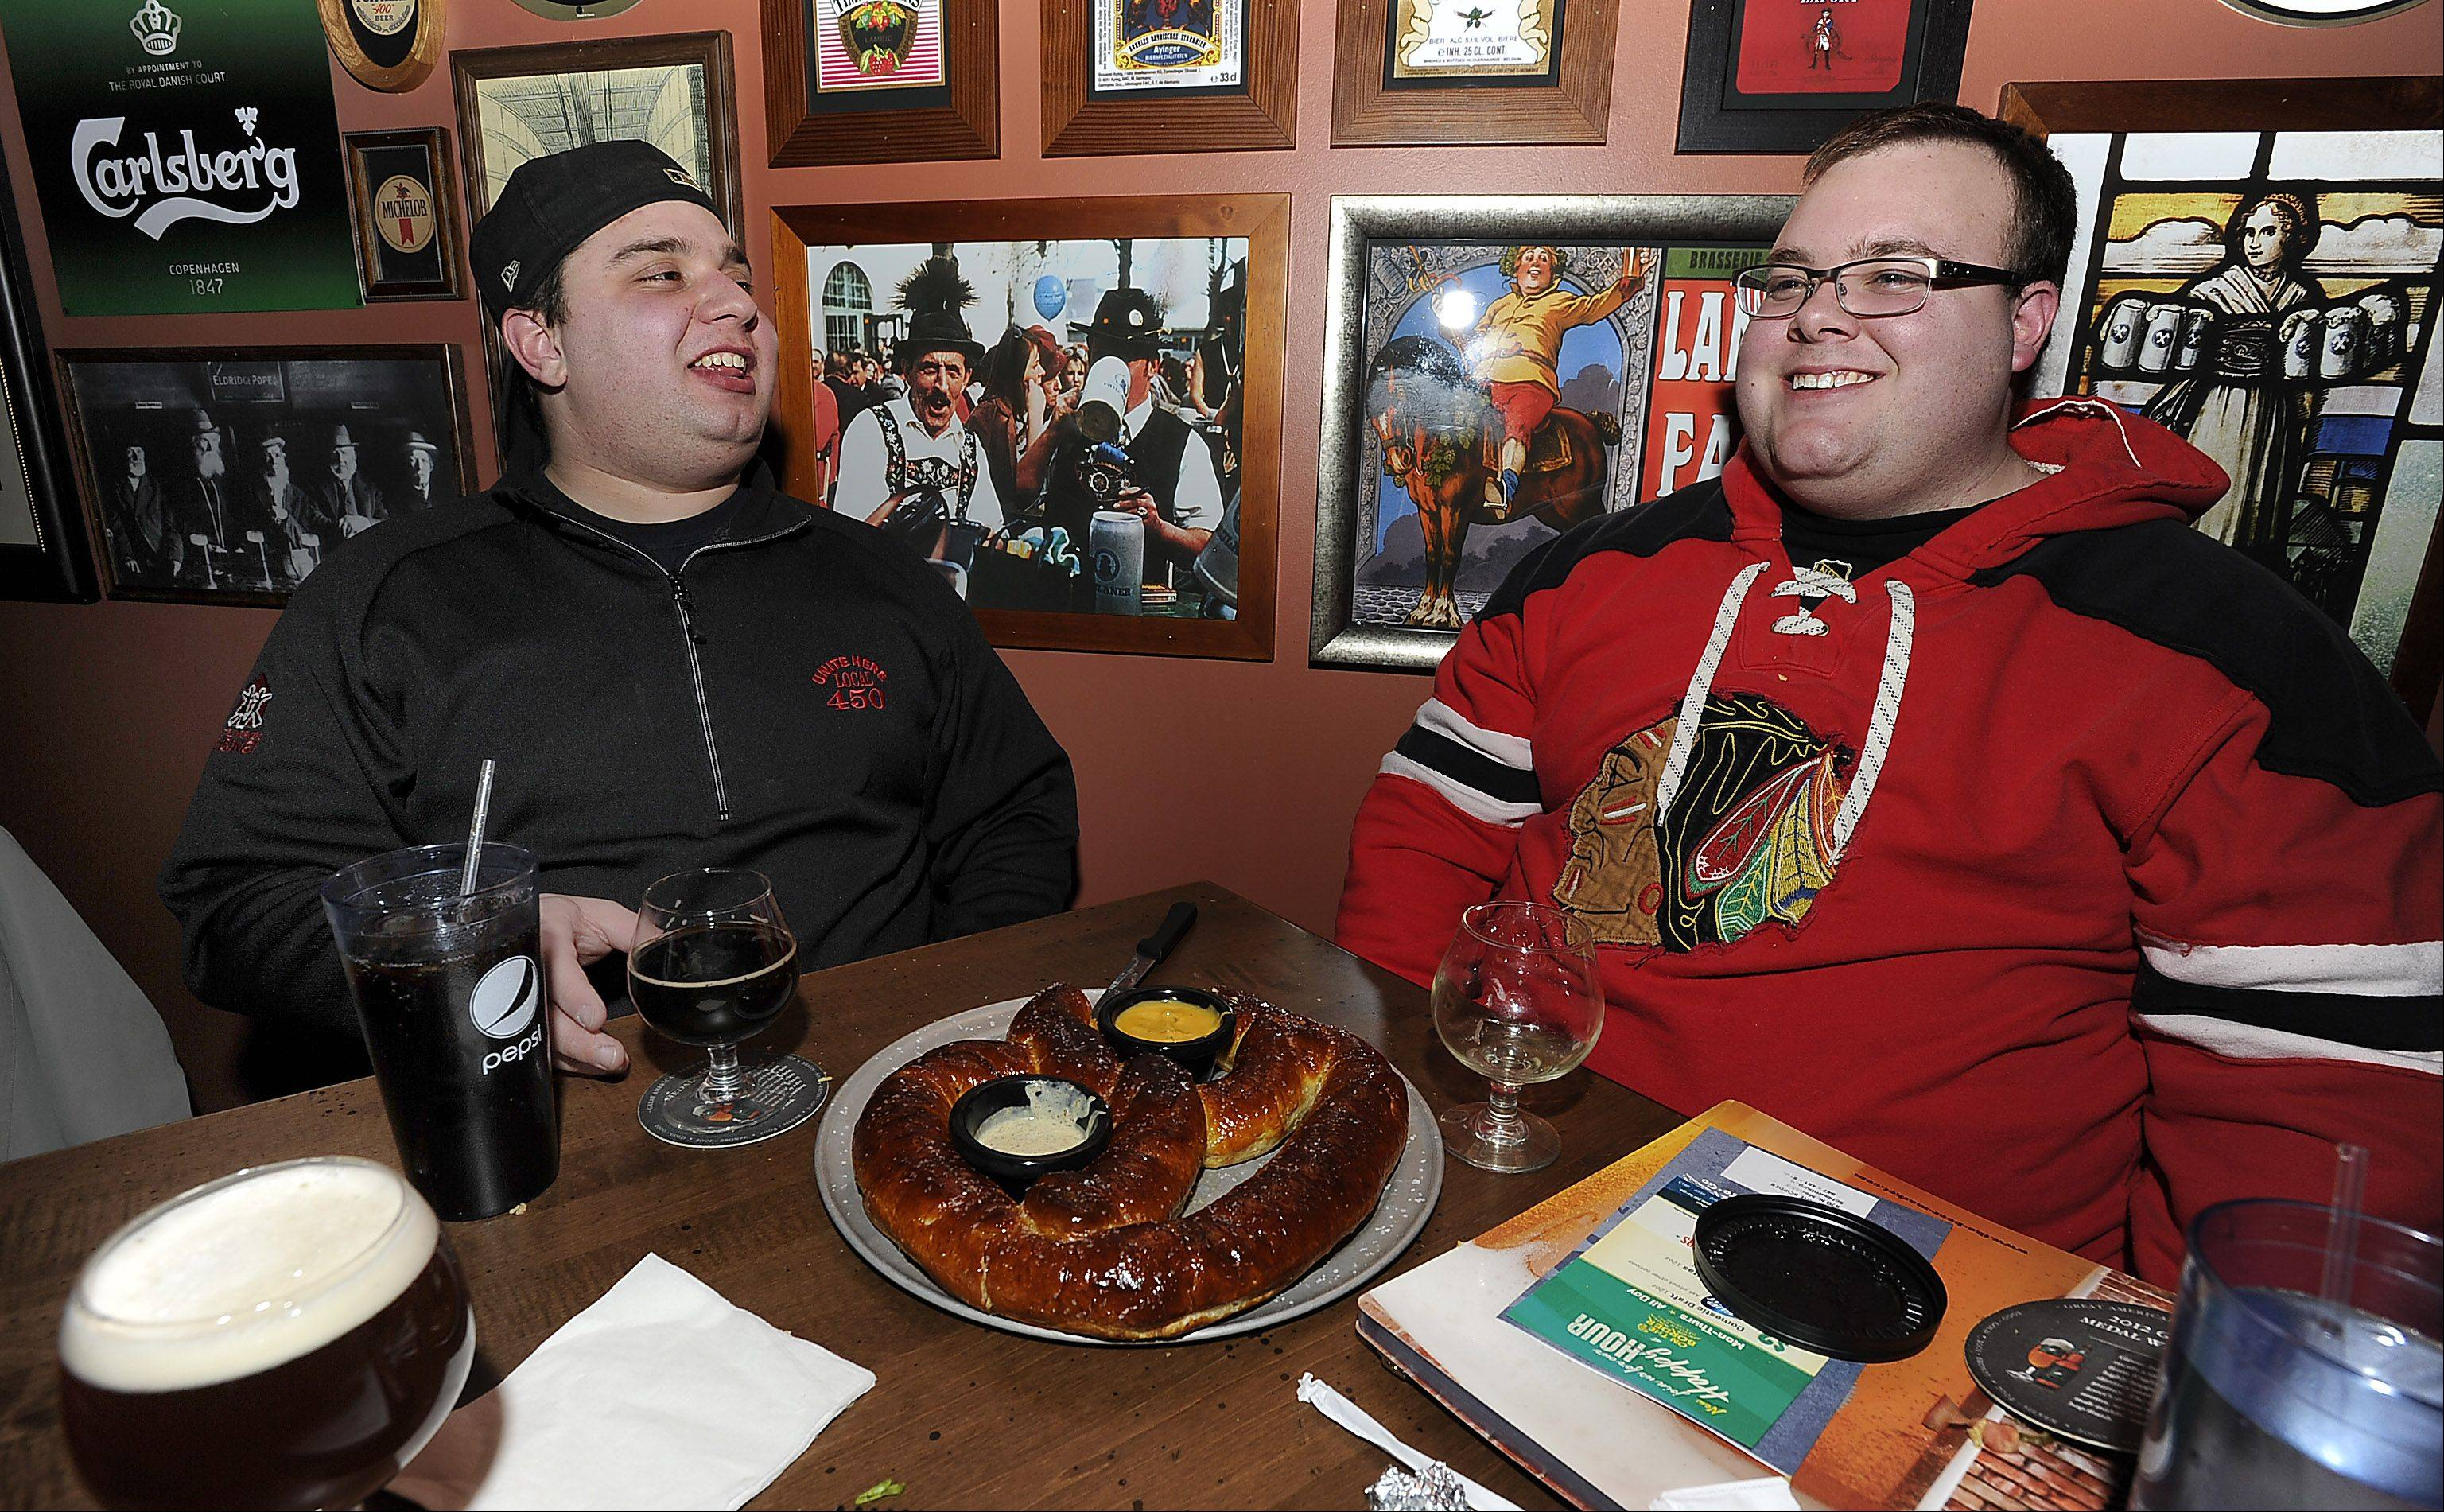 The Beer Market in Schaumburg draws hockey fans like Nick Mavraganis, left, of Elk Grove Village and Eric Fausher of Arlington Heights.